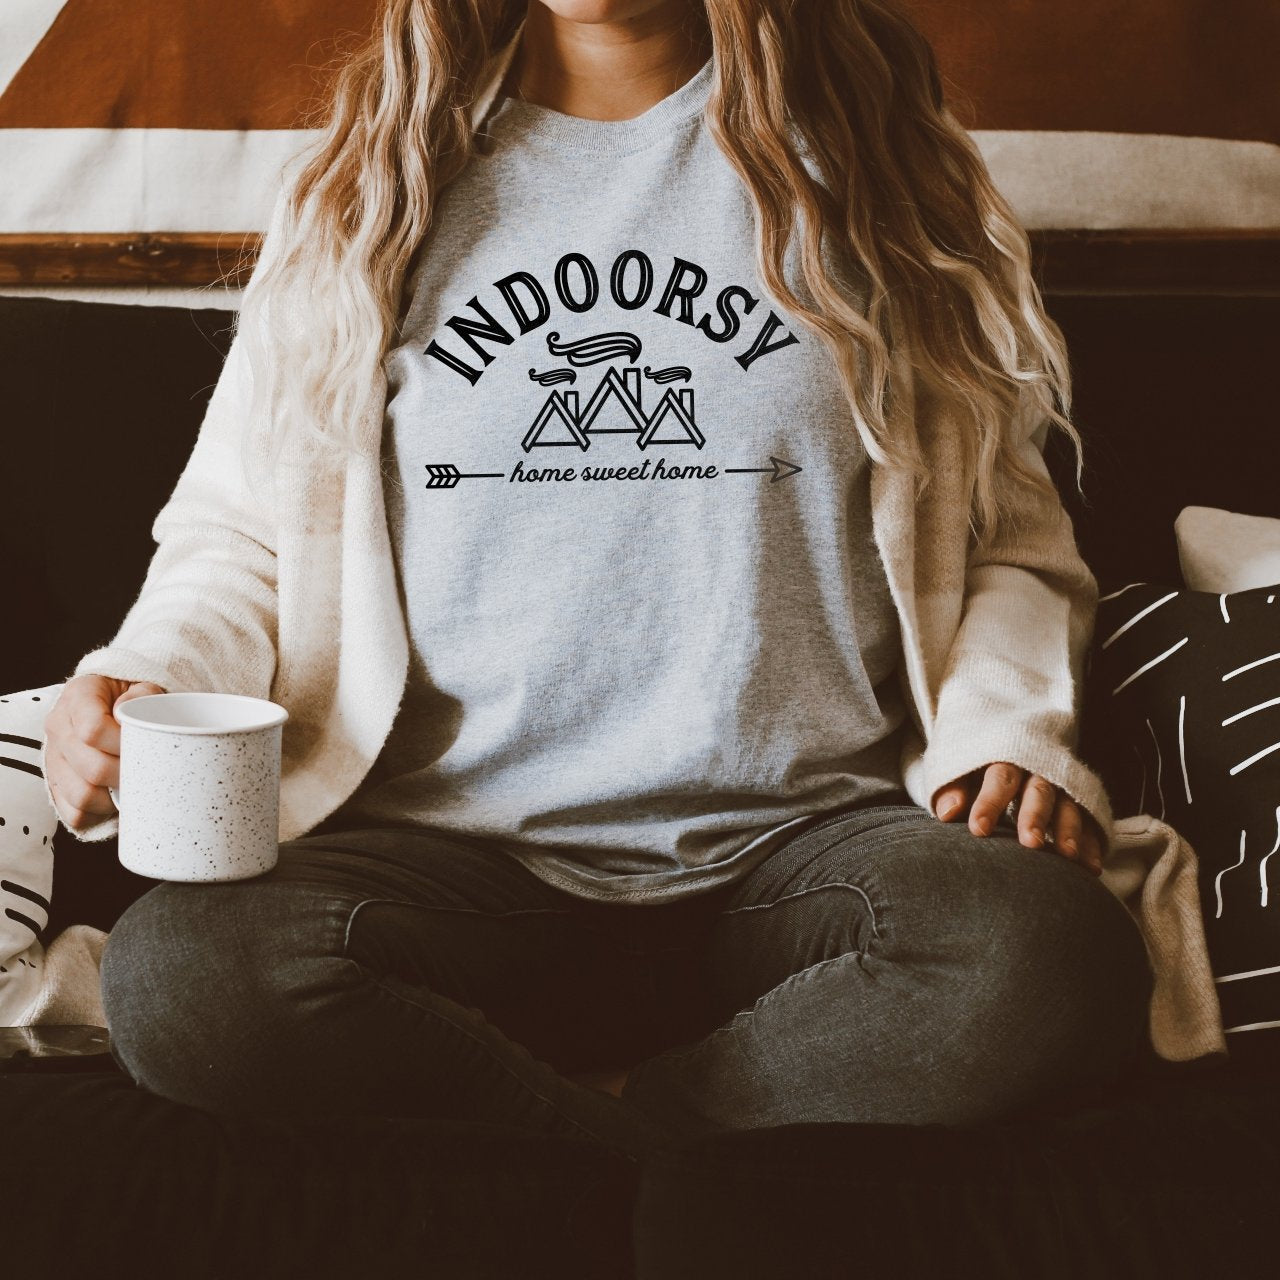 Indoorsy Shirt | Homebody Shirt | Home Sweet Home Shirt | Introvert Shirt | Gift for Her